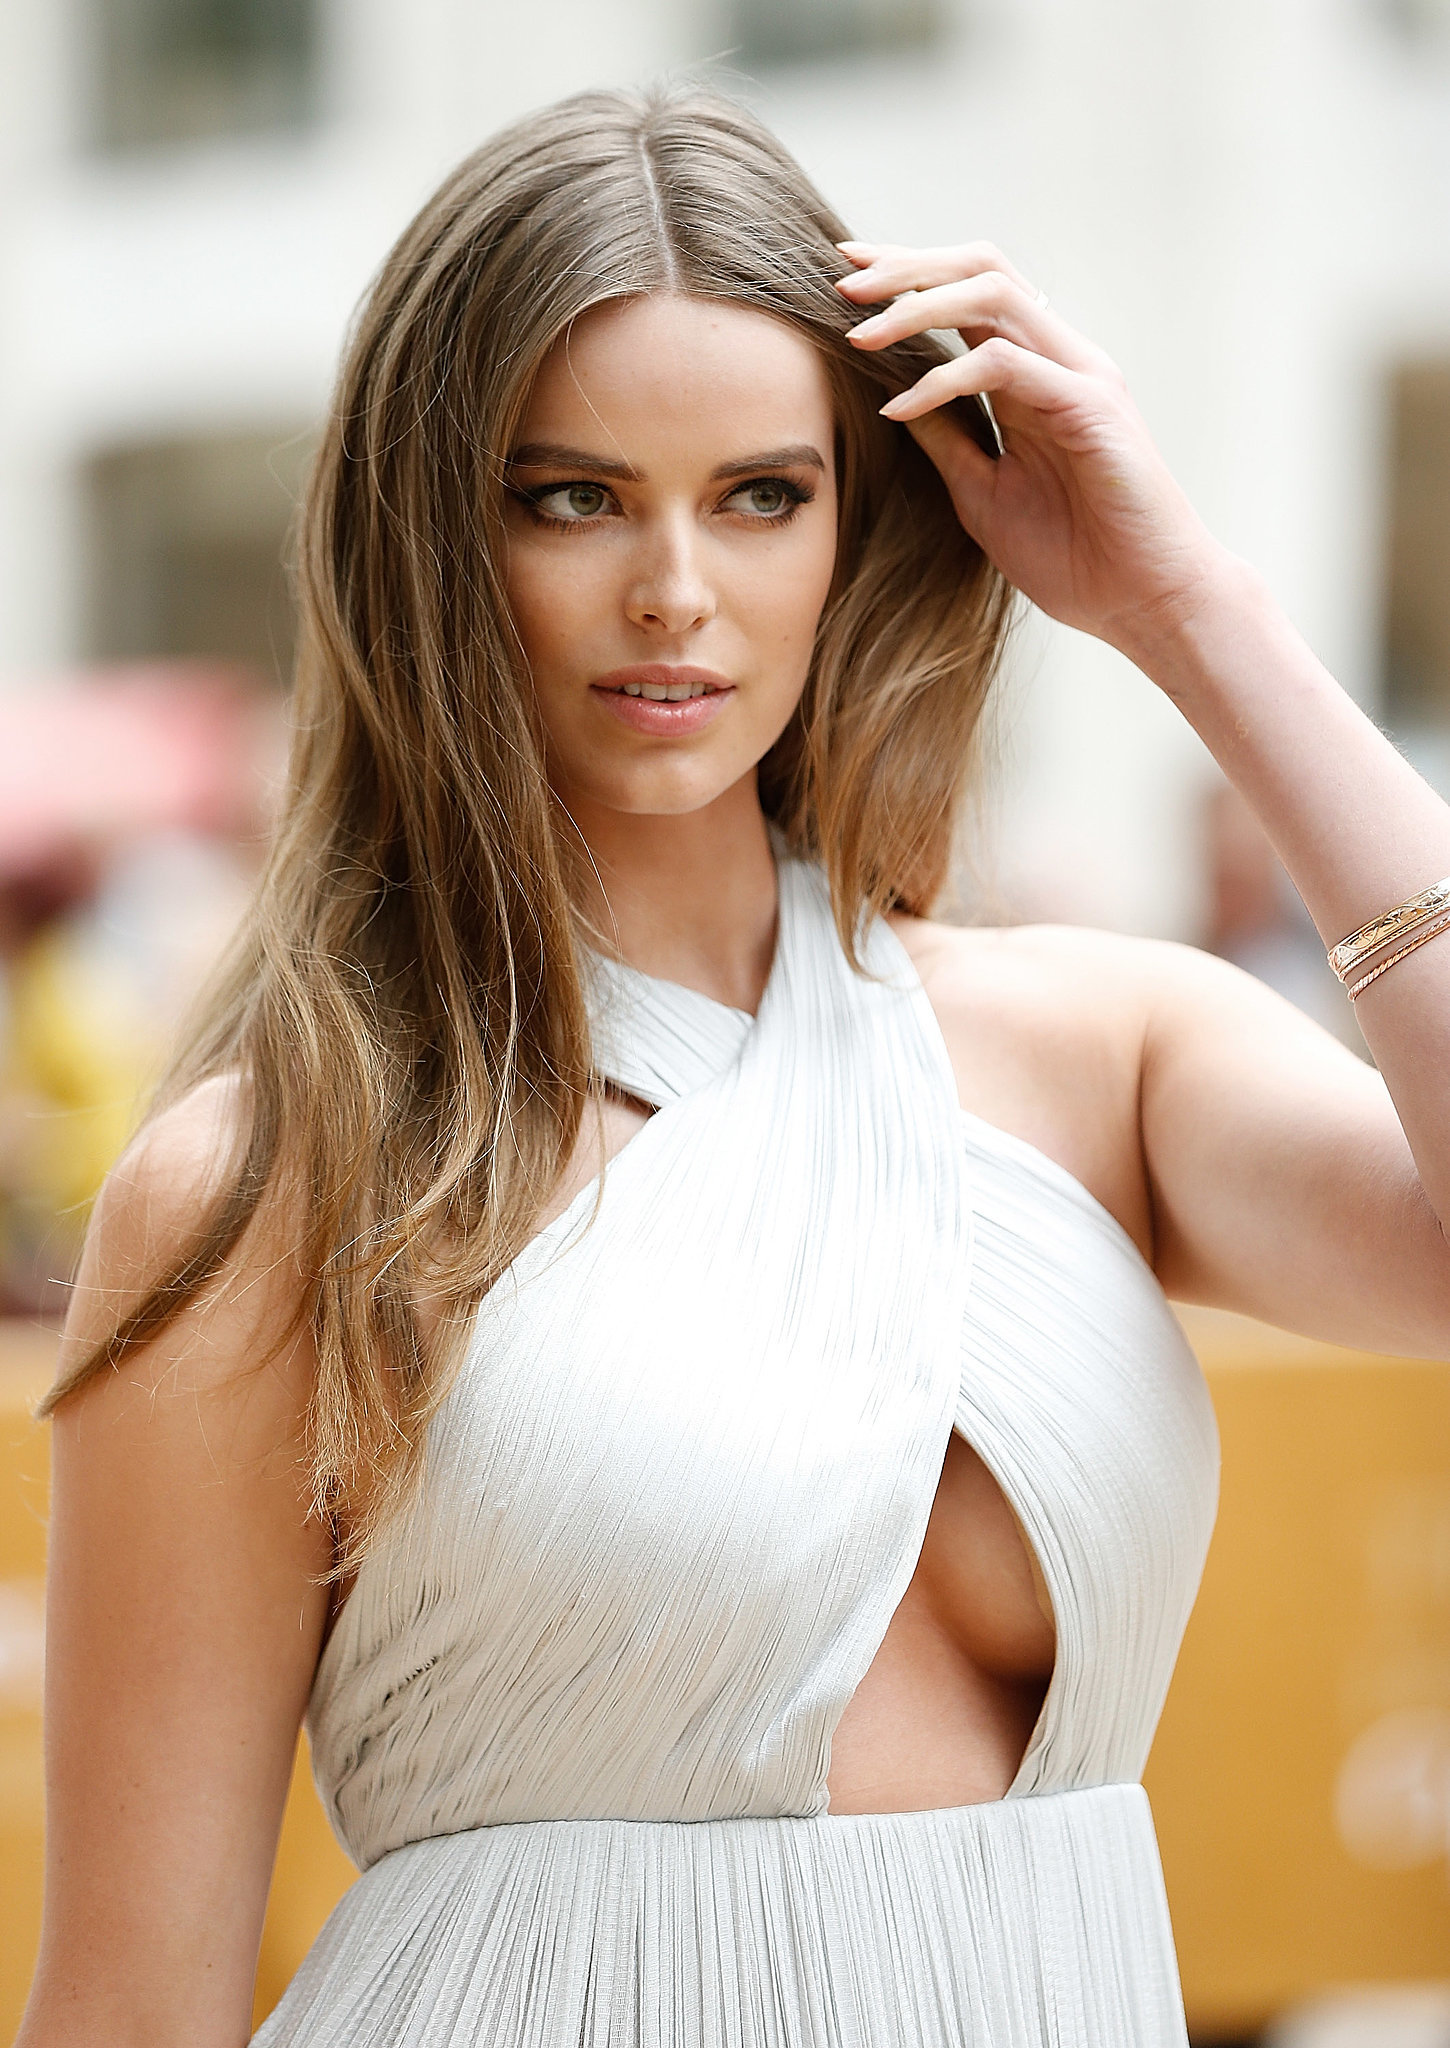 Robyn Lawley Robyn Lawley 16 Women Who Are Changing What It Means to